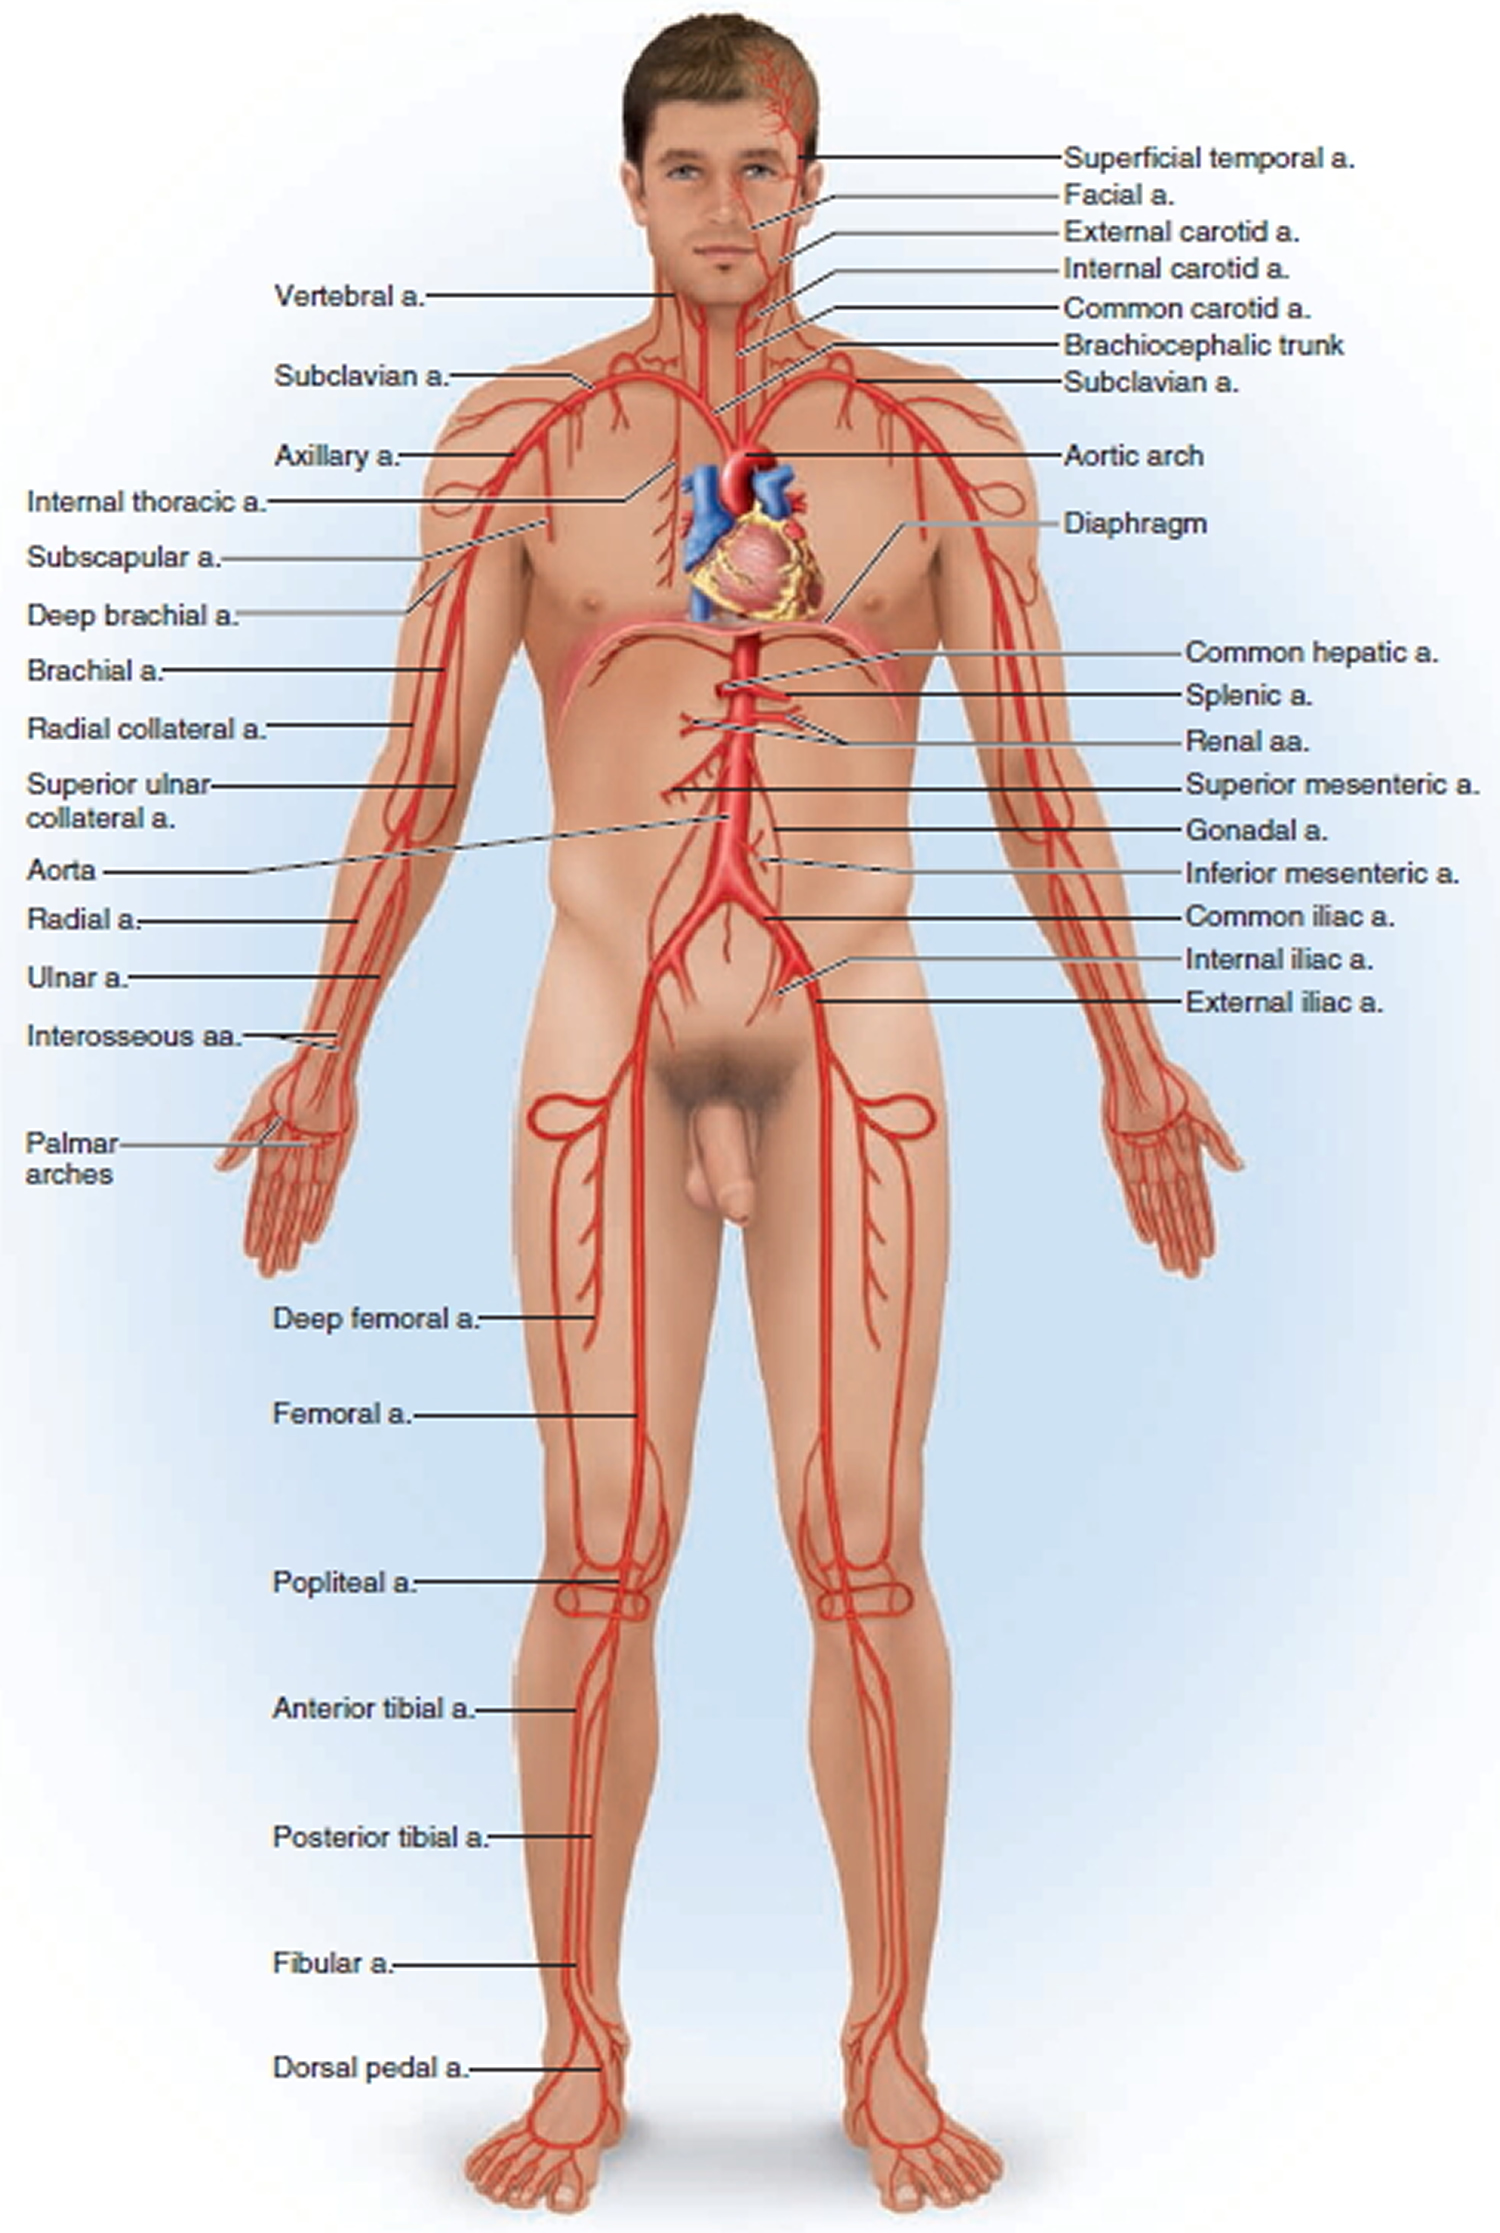 Major Systemic Arteries